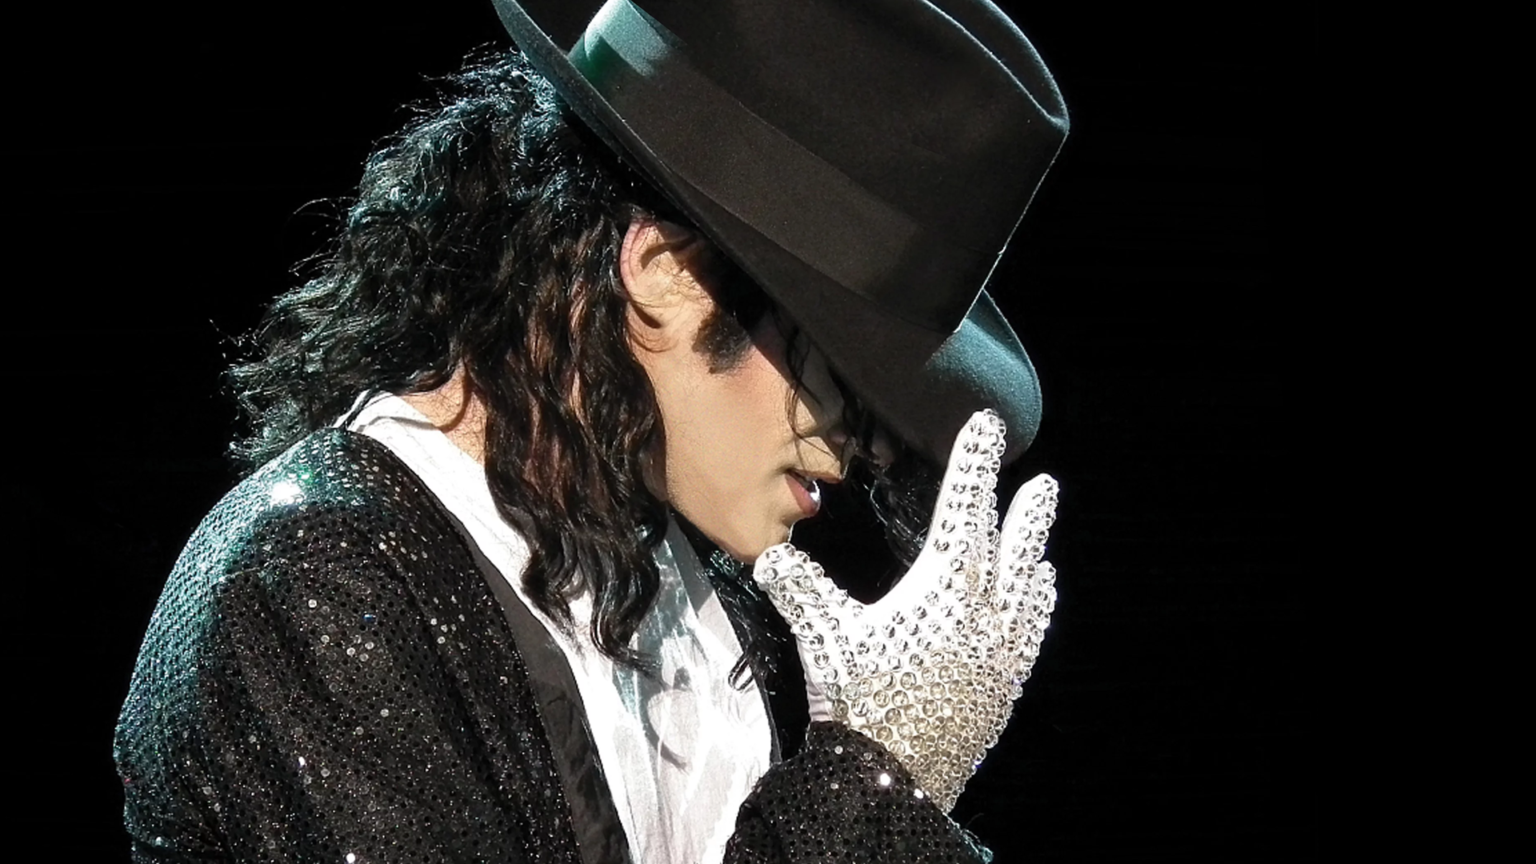 A new musical puppet show blames Michael Jacksons child